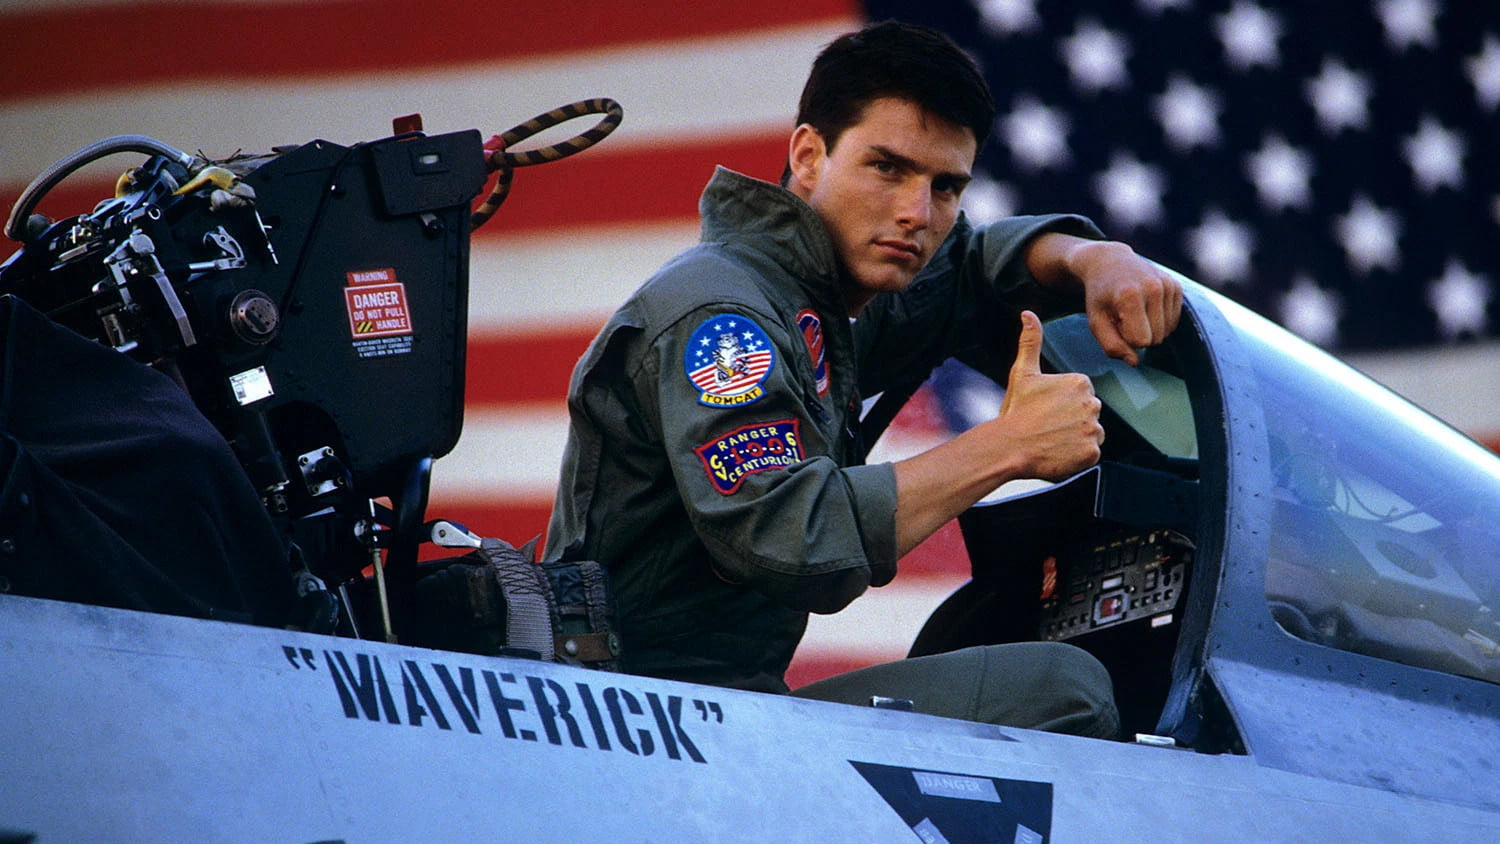 Top Gun, Top Gun 2 Maverick Release Date And What Is Storyline?